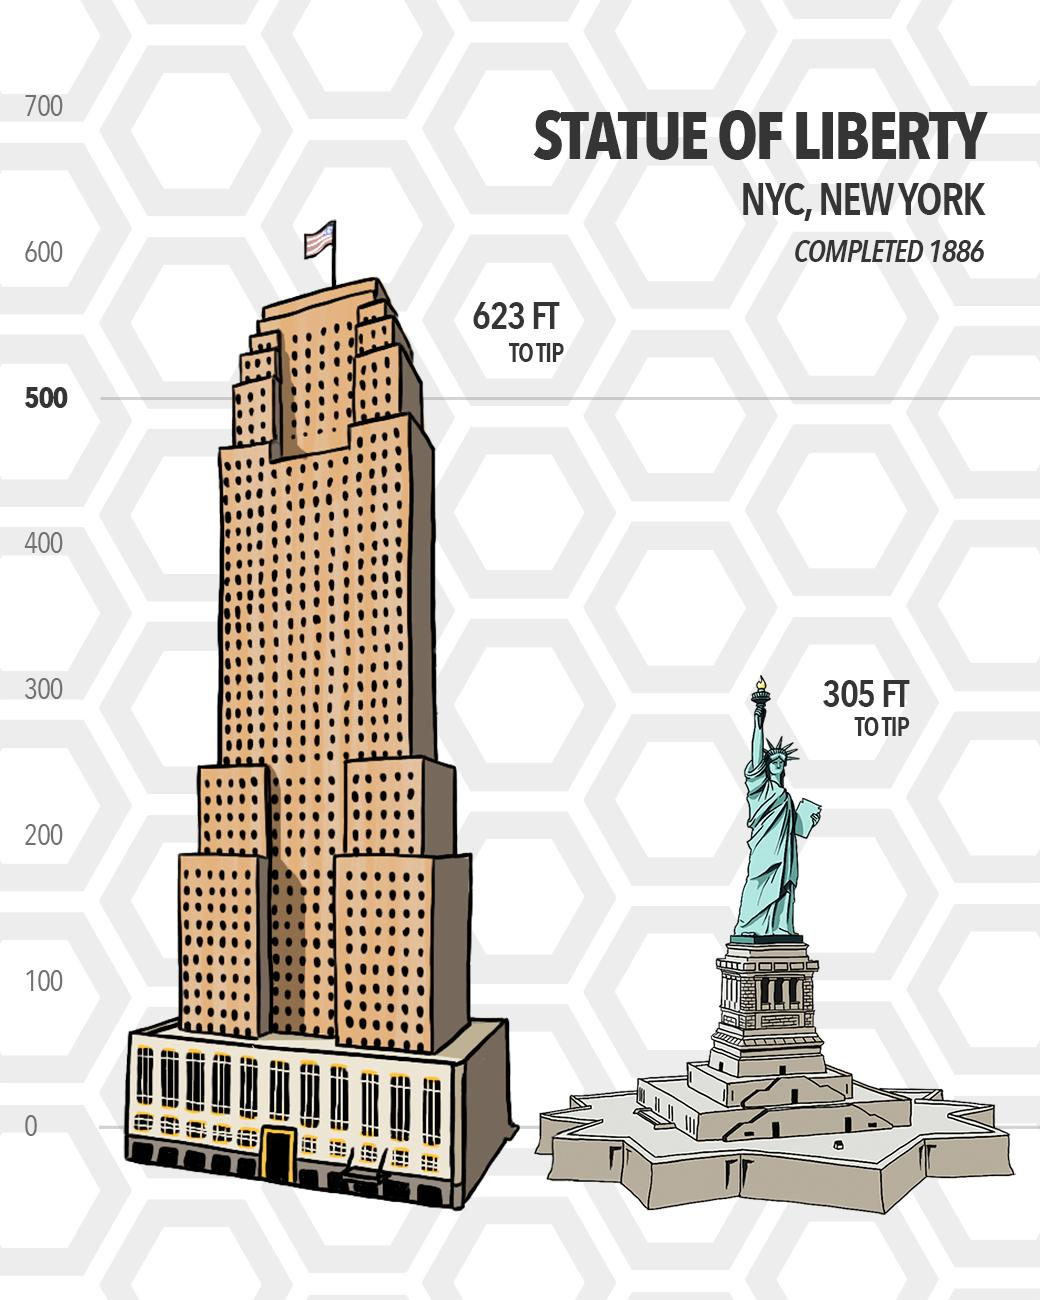 The Statue of Liberty stands 305 feet tall in New York City—a full 318 feet shorter than Carew Tower to its tip. Carew Tower was completed 46 years after Lady Liberty. (Source: SkyscraperCenter.com) / Image: Phil Armstrong // Published: 5.15.19